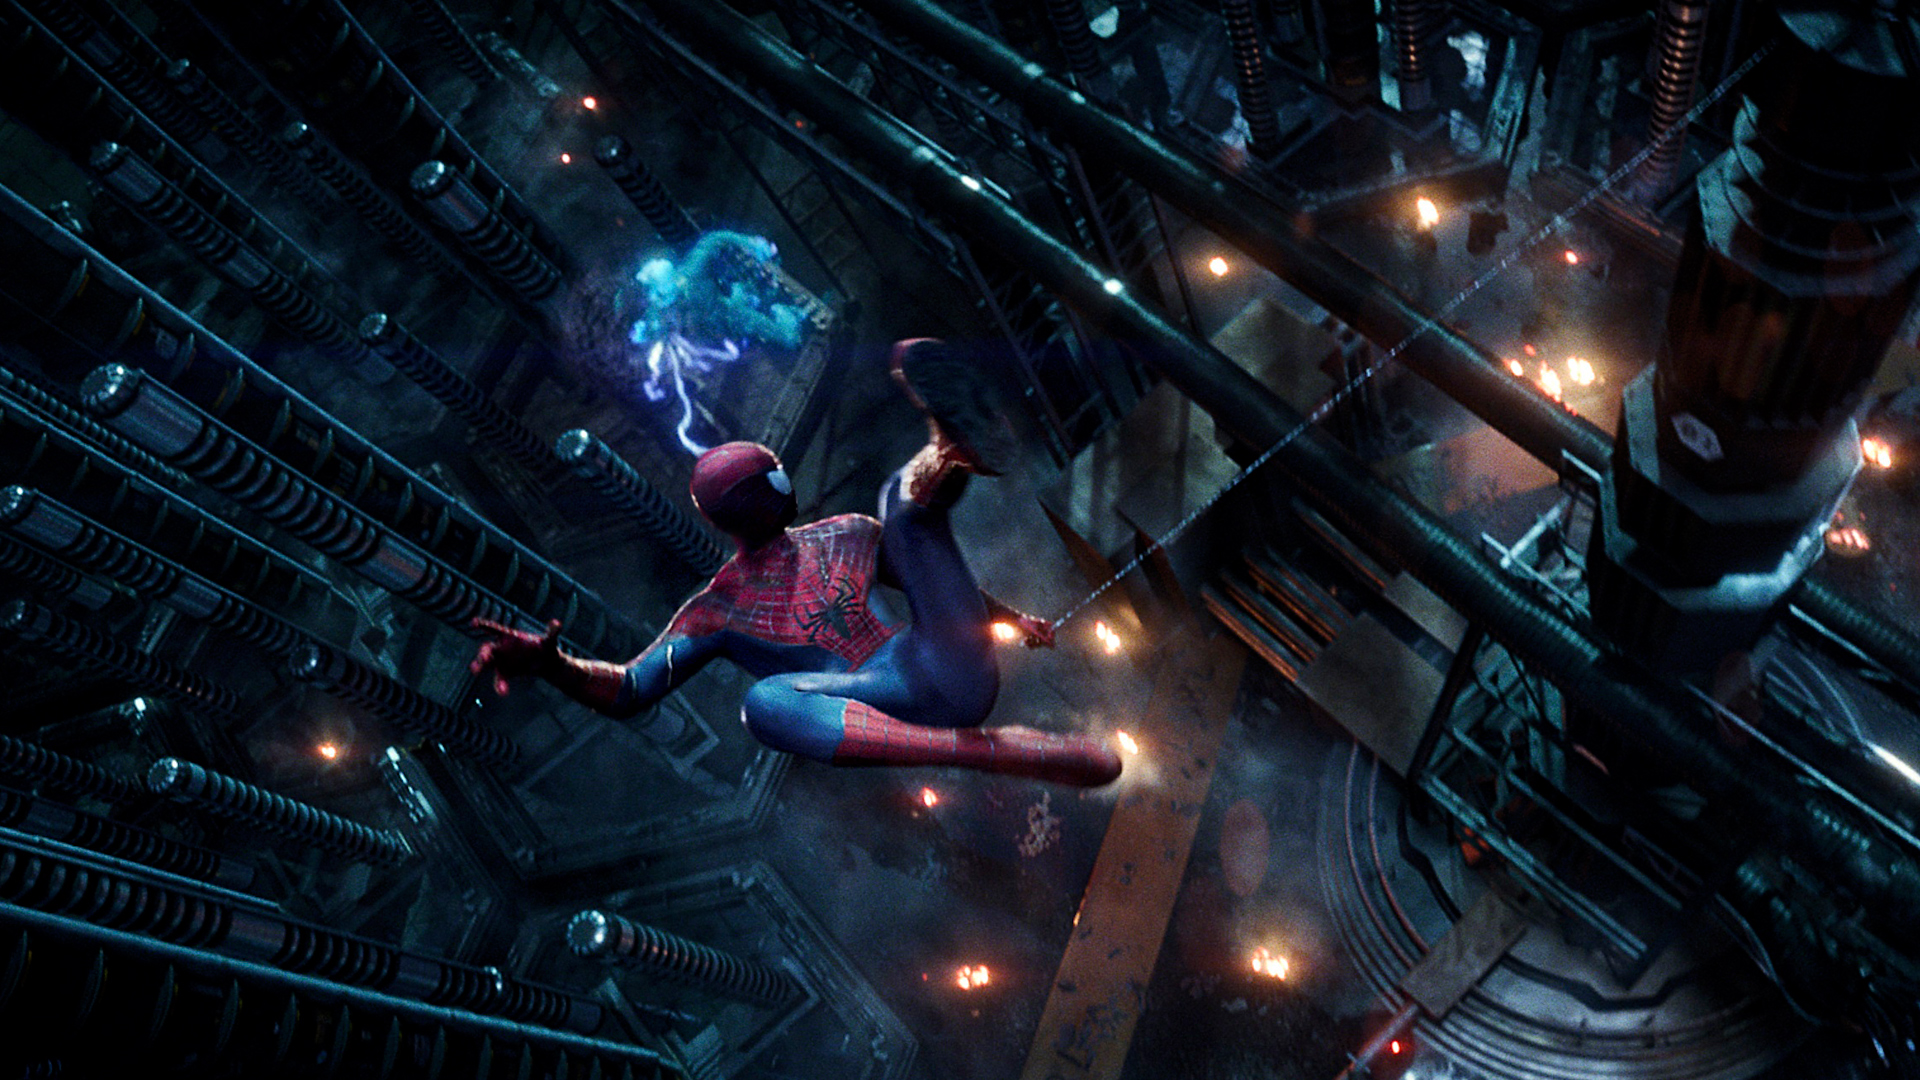 10 Top Spider Man 2099 Wallpaper Full Hd 1080p For Pc Desktop: Spider Man HD Wallpapers 1080p